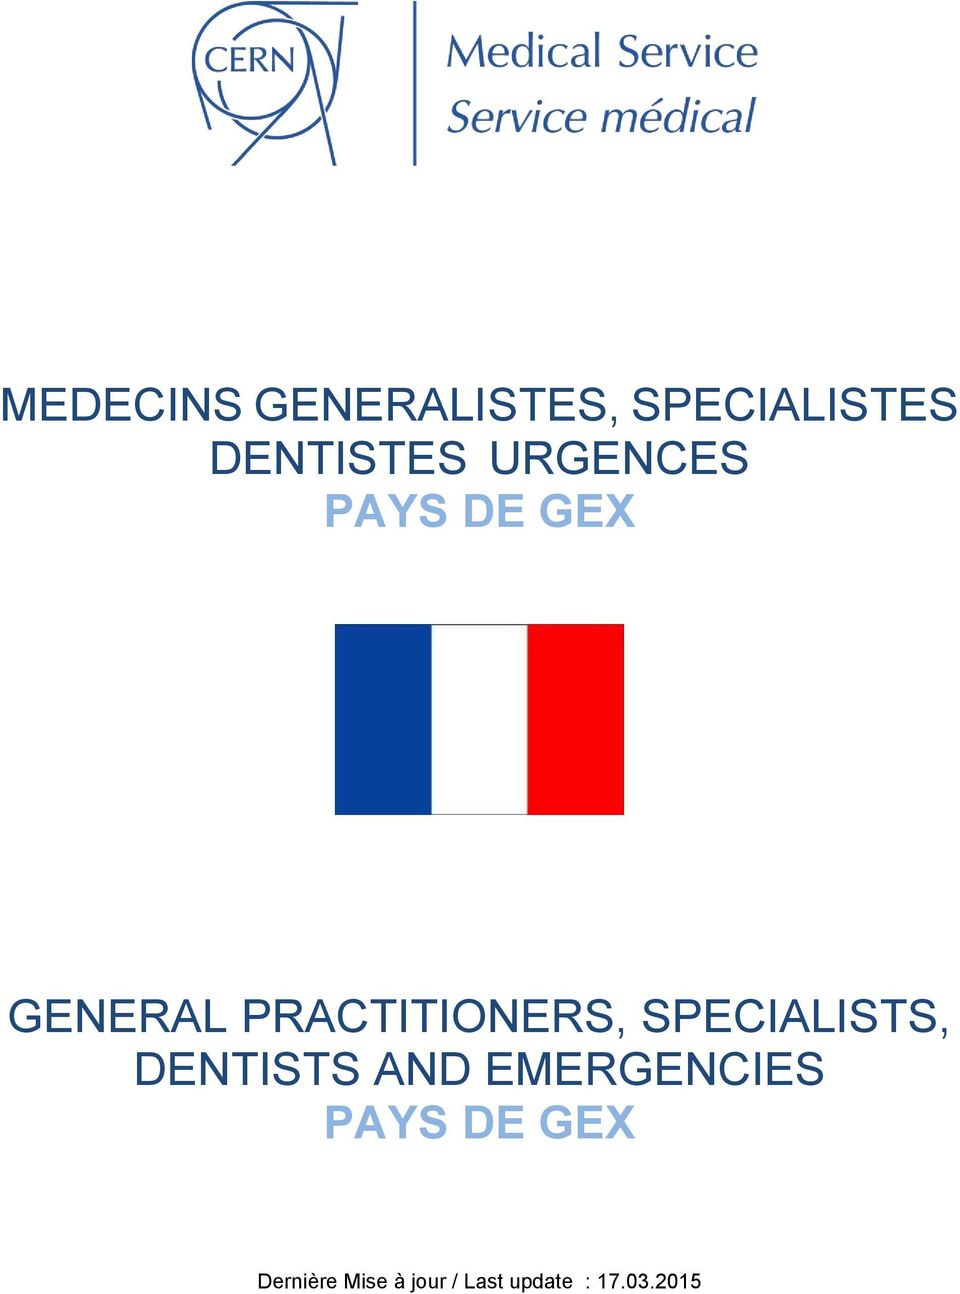 SPECIALISTS, DENTISTS AND EMERGENCIES PAYS DE